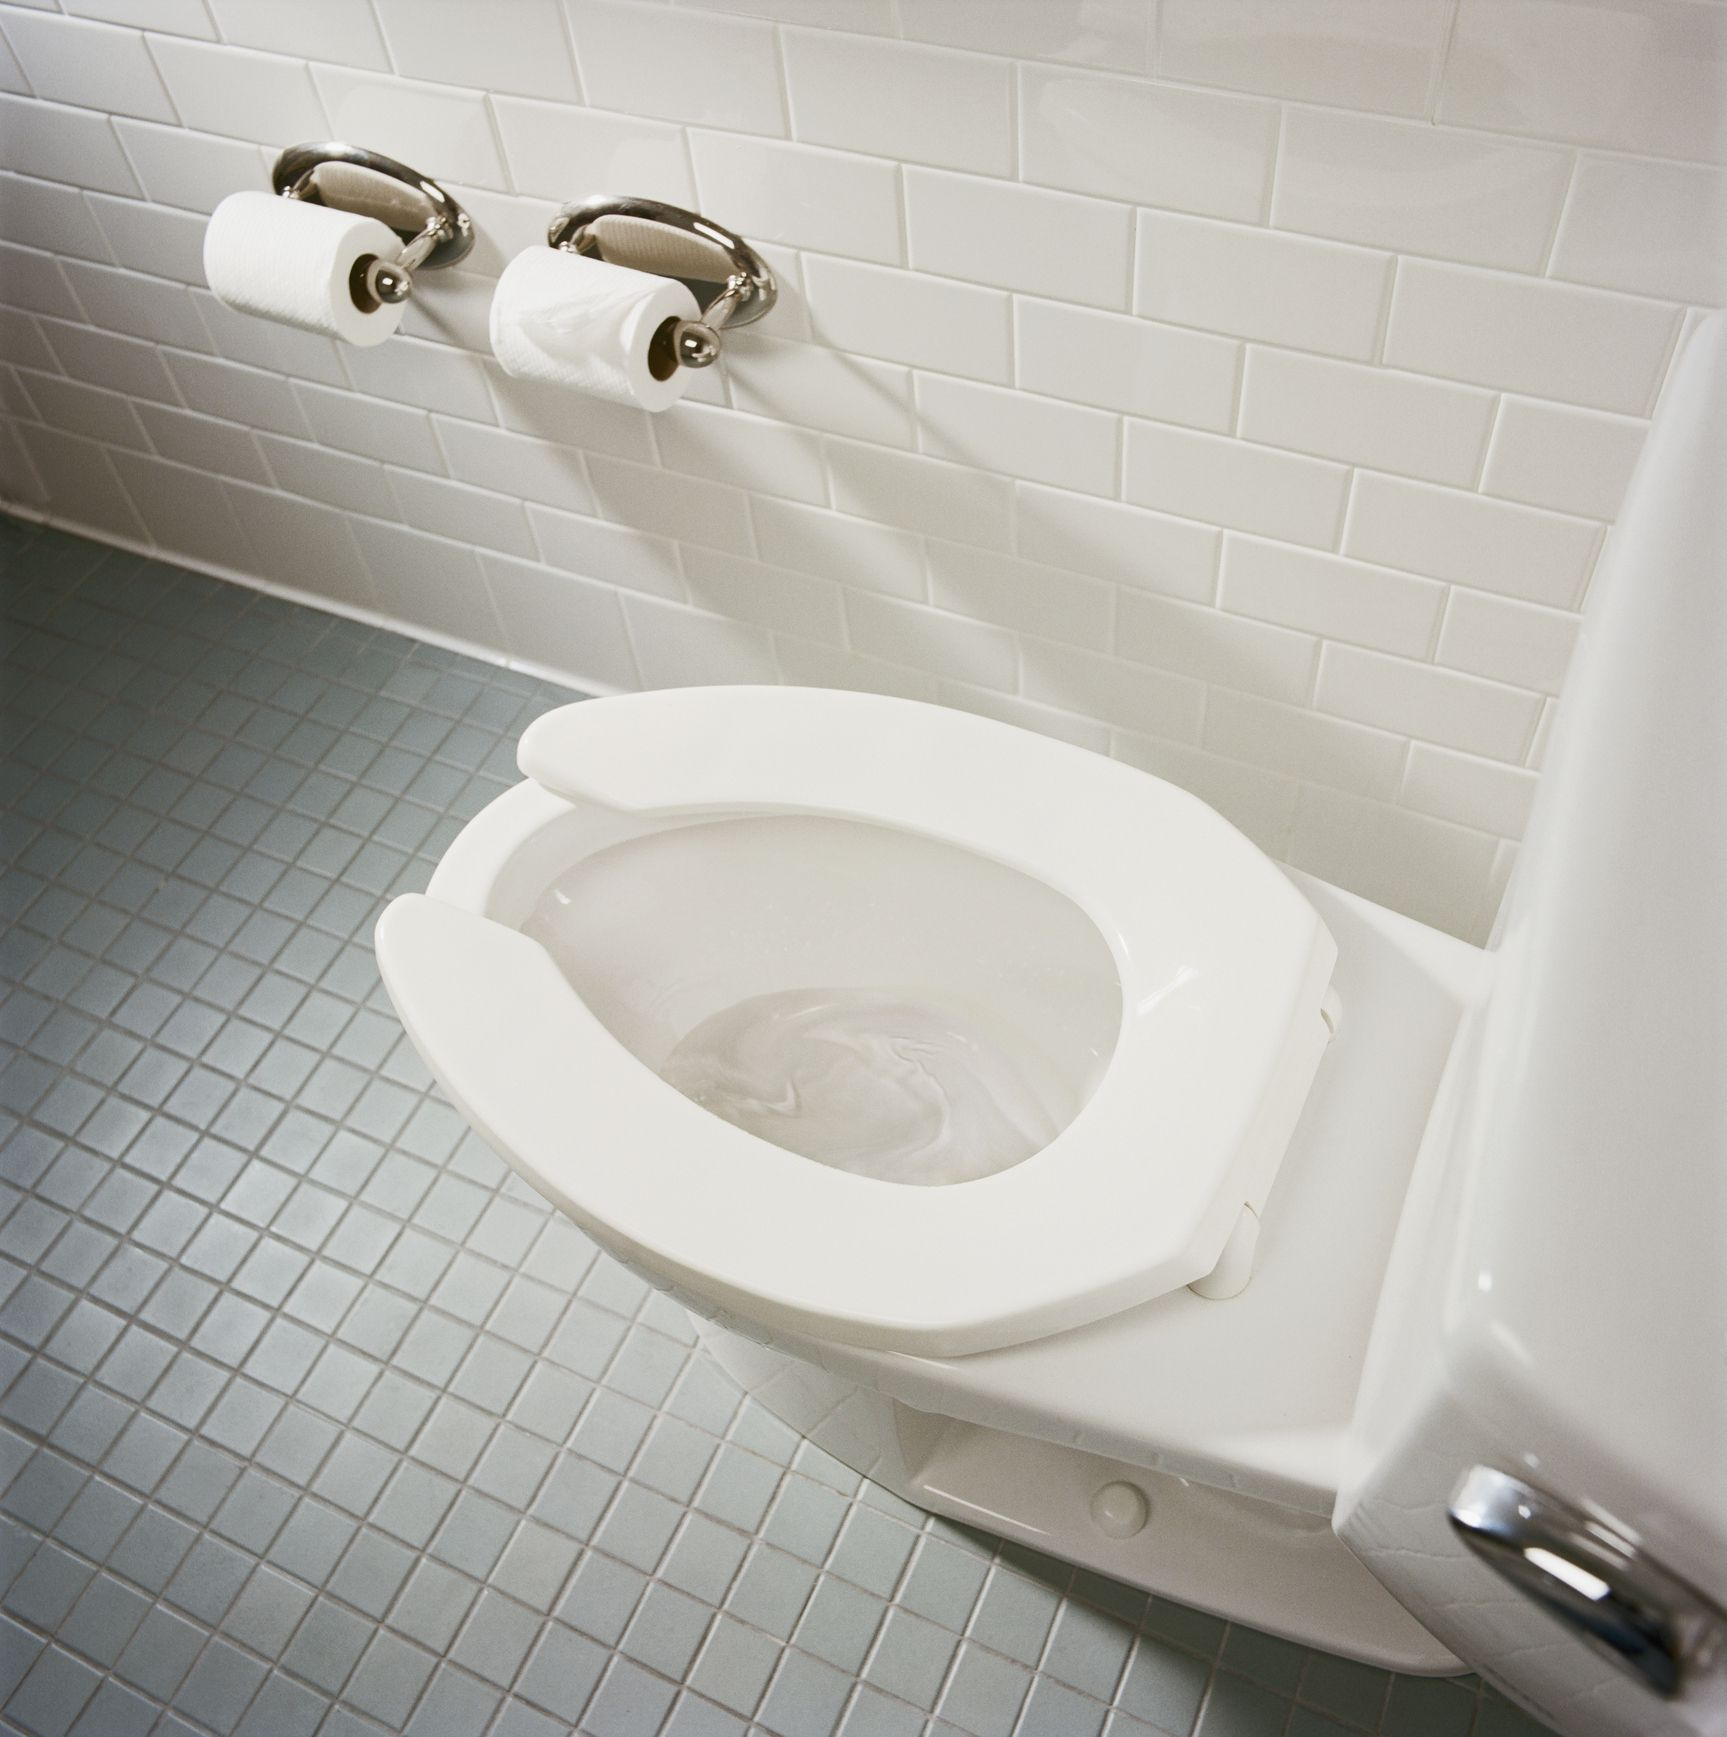 How To Properly Set A Toilet To Avoid Leakage